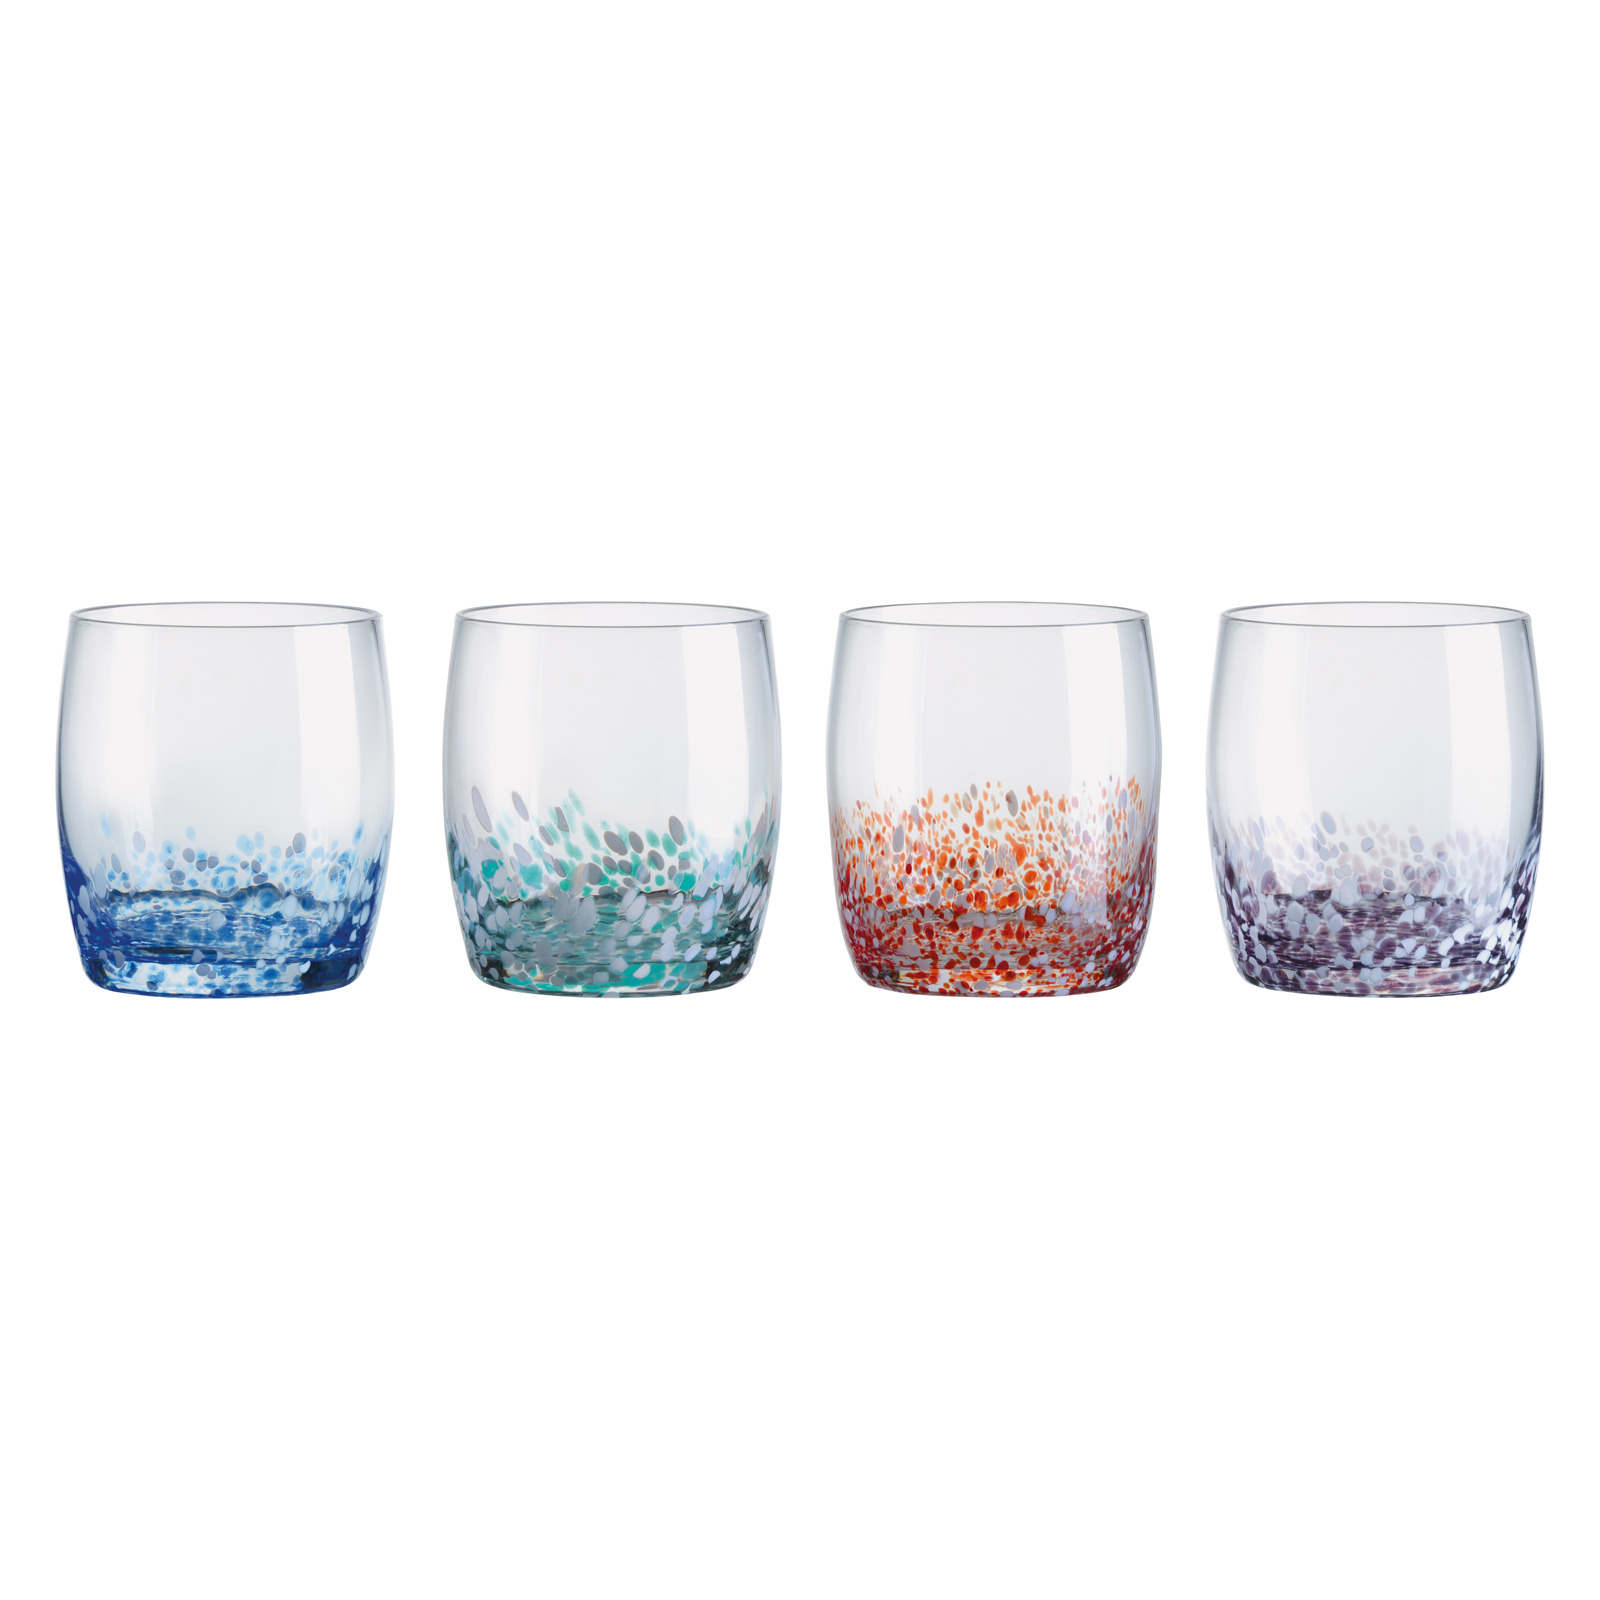 Set of 4 Speckle DOF Tumblers